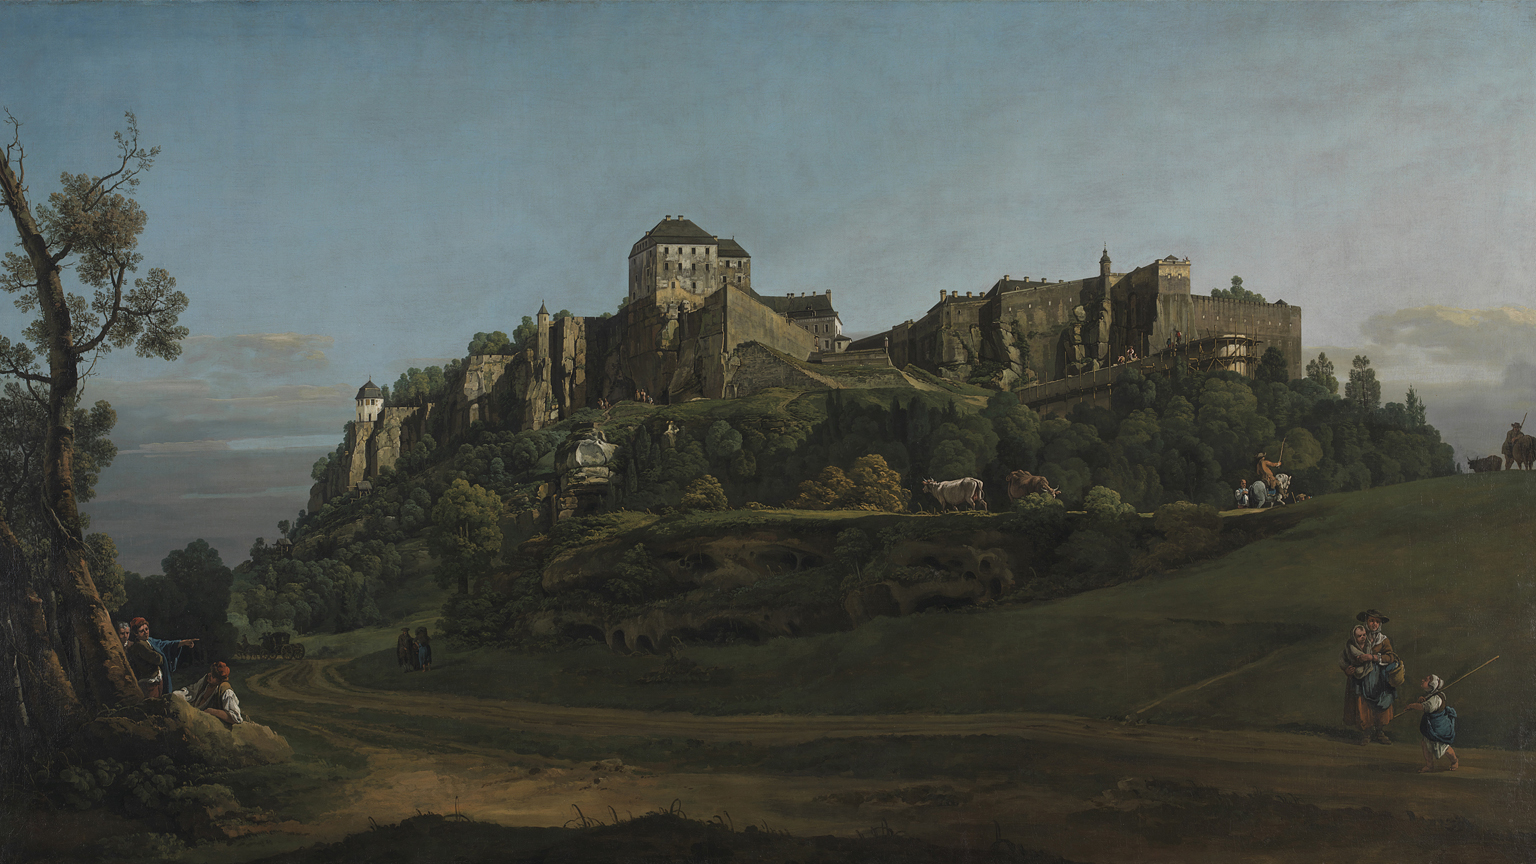 Bernardo Bellotto, The Fortress of Königstein from the North, 1756-8 © The National Gallery, London